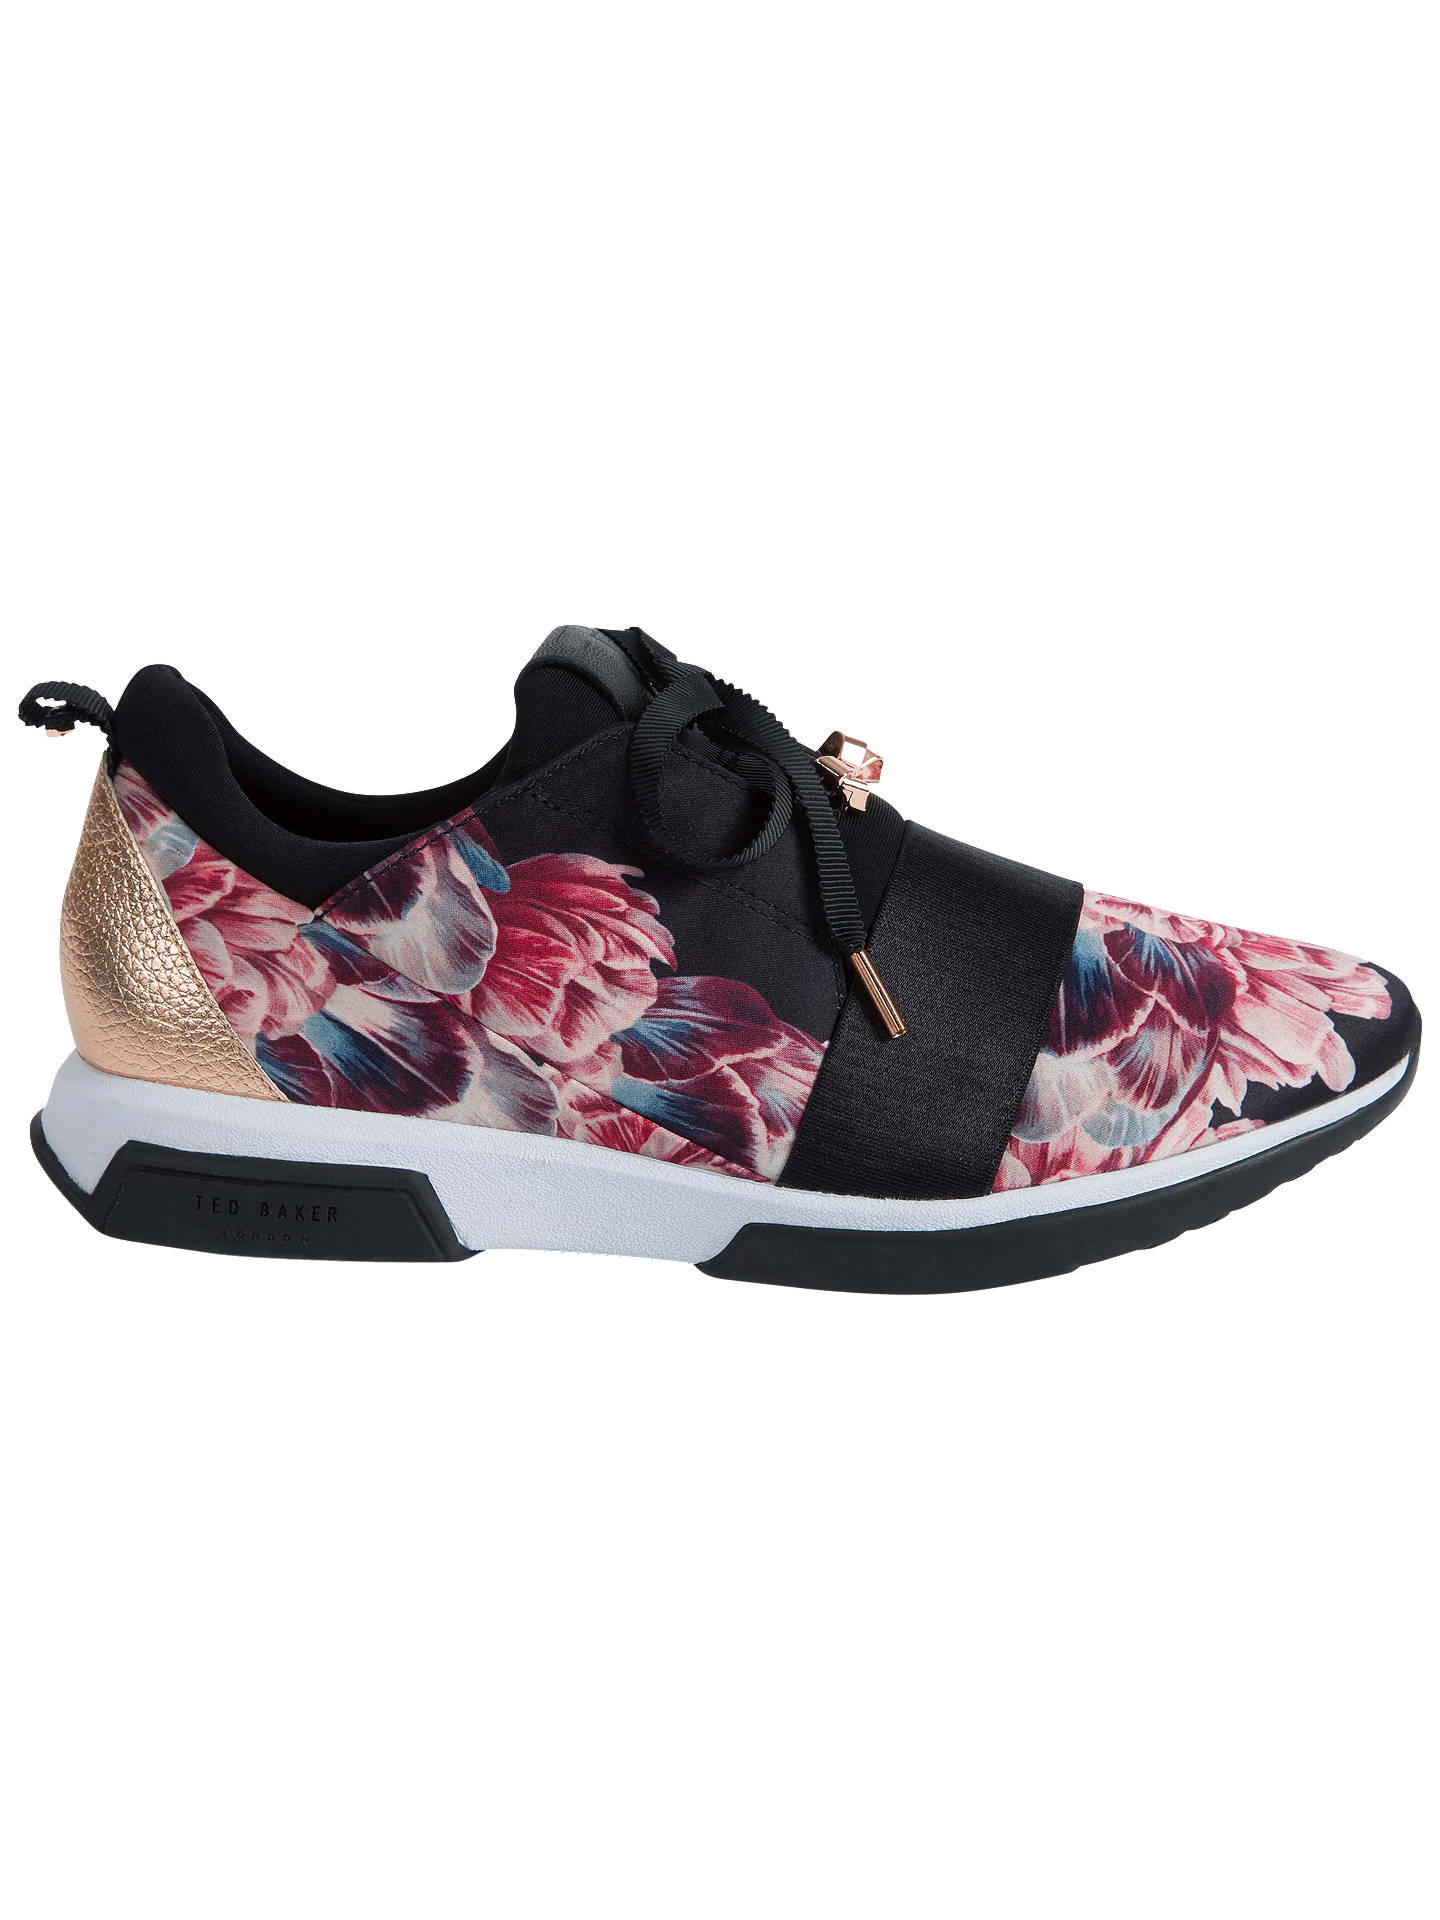 BuyTed Baker Cepap2 Floral Textile Trainers, Multi, 3 Online at johnlewis.com